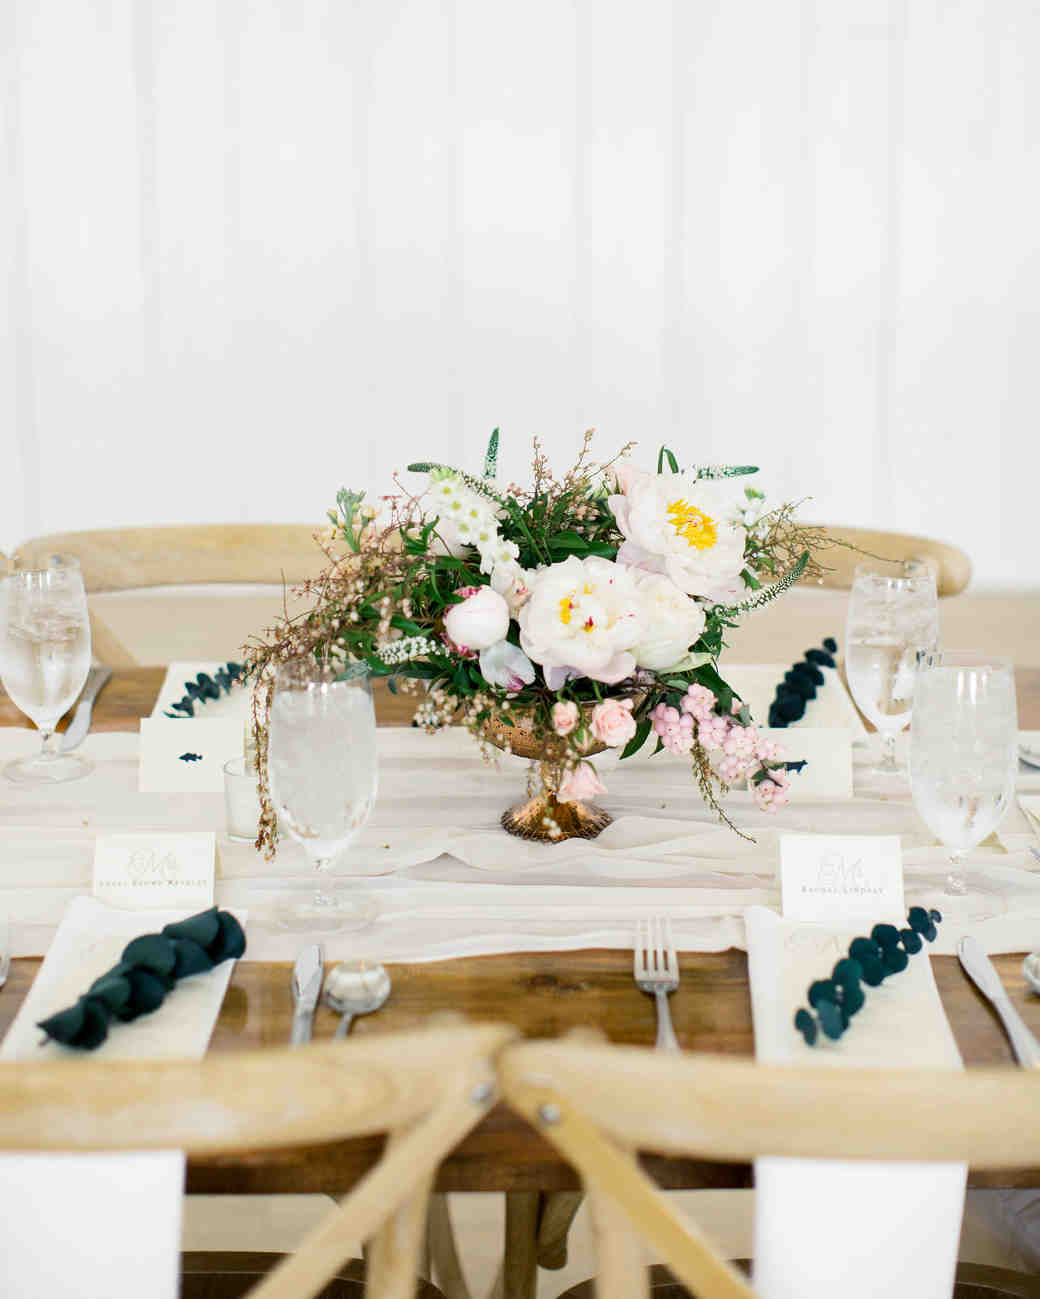 wedding reception table setting with floral centerpiece